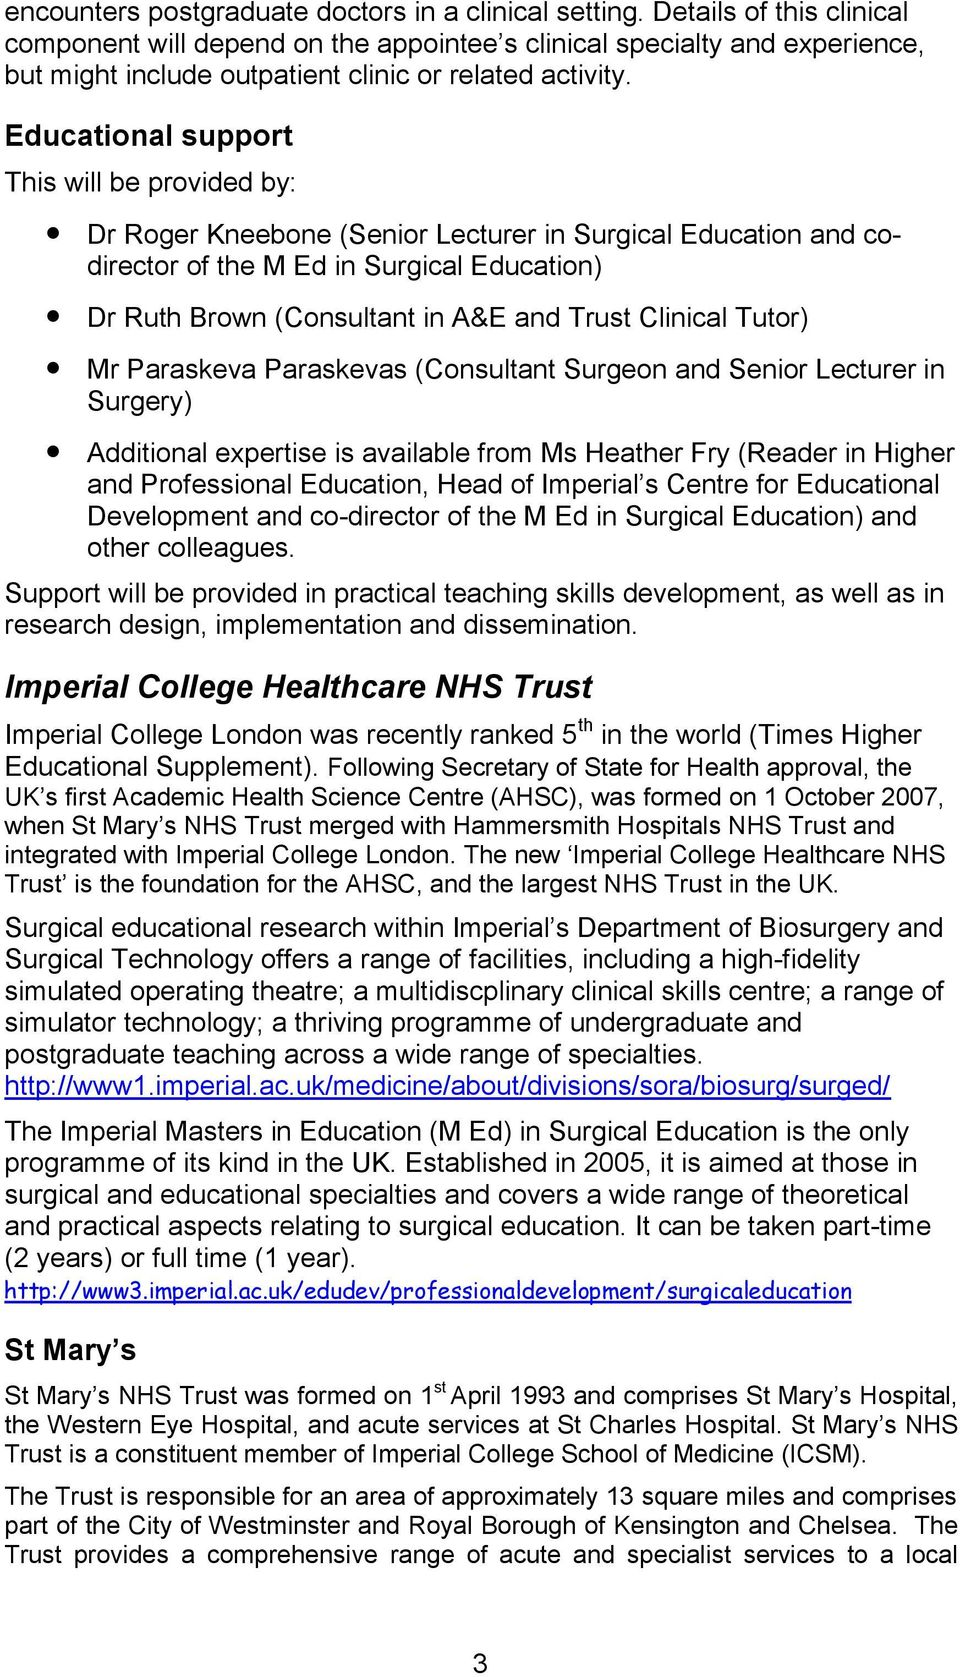 Educational support This will be provided by: Dr Roger Kneebone (Senior Lecturer in Surgical Education and codirector of the M Ed in Surgical Education) Dr Ruth Brown (Consultant in A&E and Trust